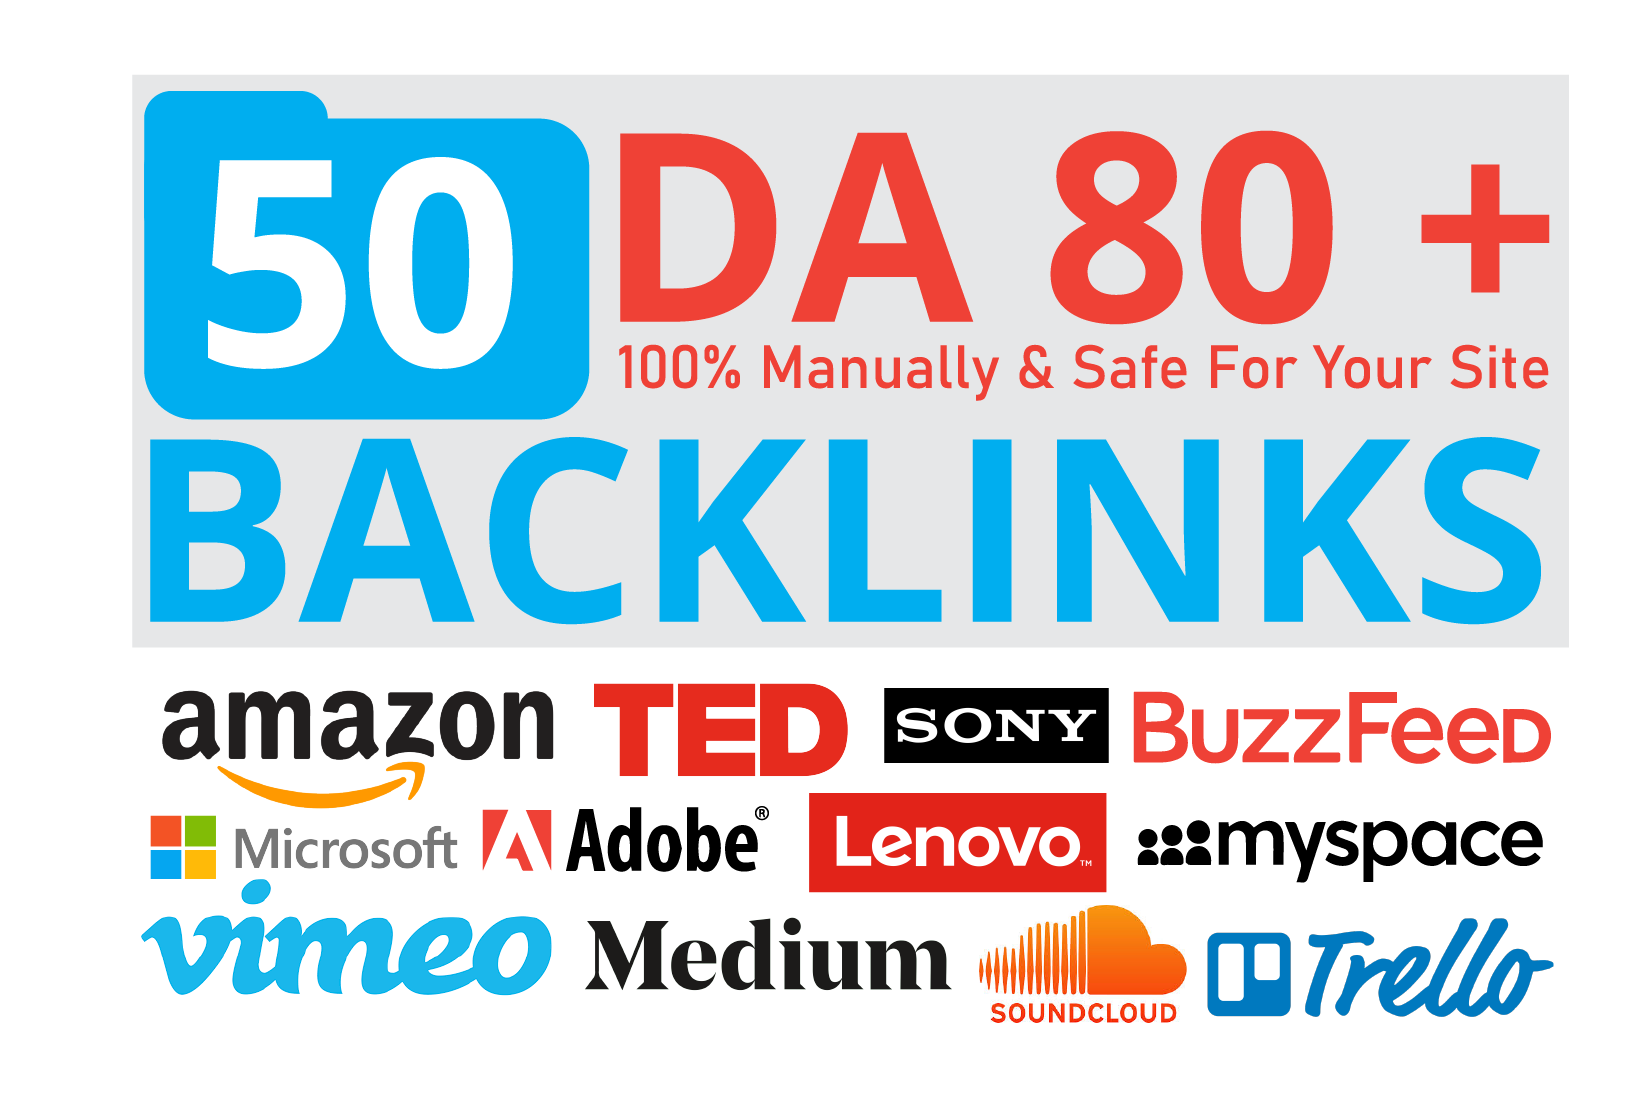 Top 50 Big Brand Companies Backlinks Give Your Site a HUGE boost for Google 1st page keyword ranking